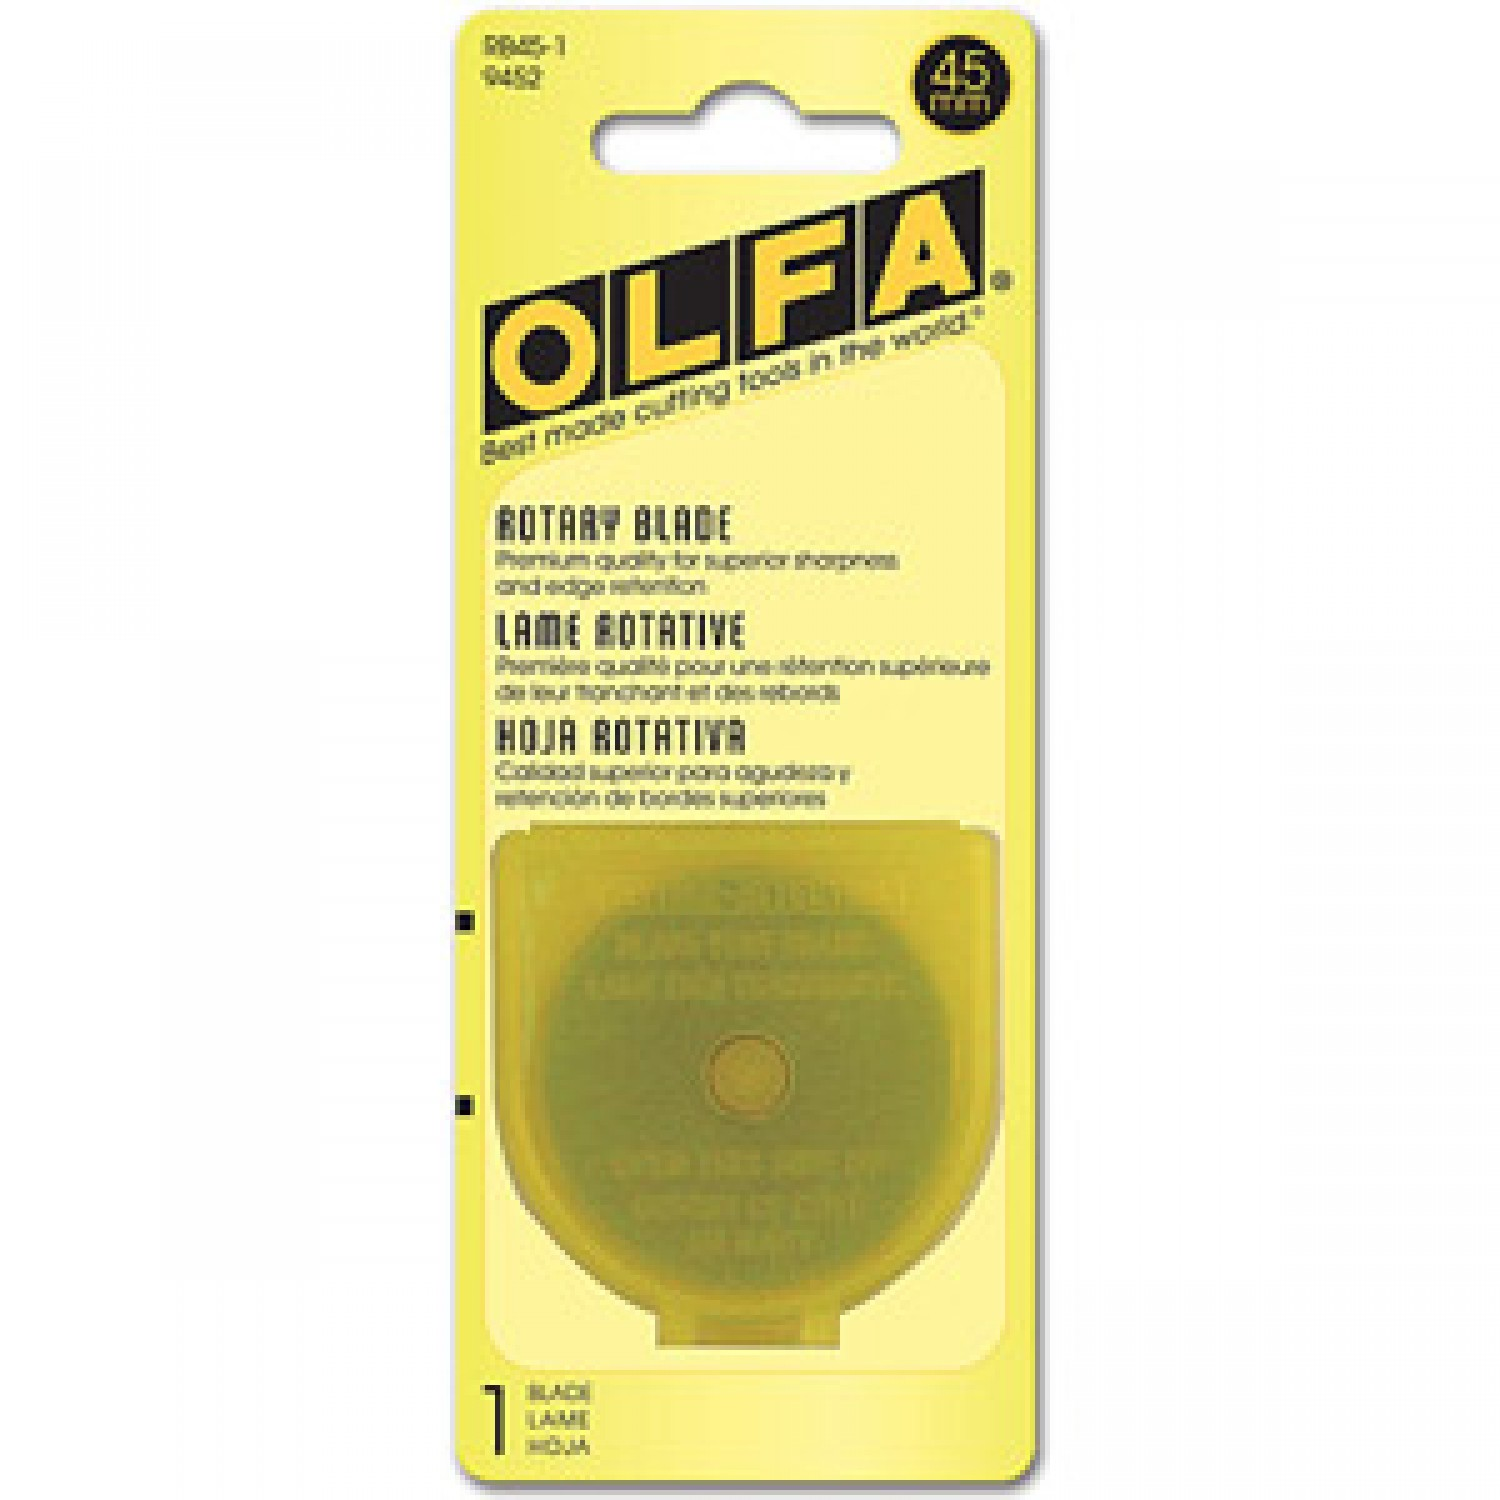 Olfa RB45-1 Rotary Blade 45mm, 1 Pack